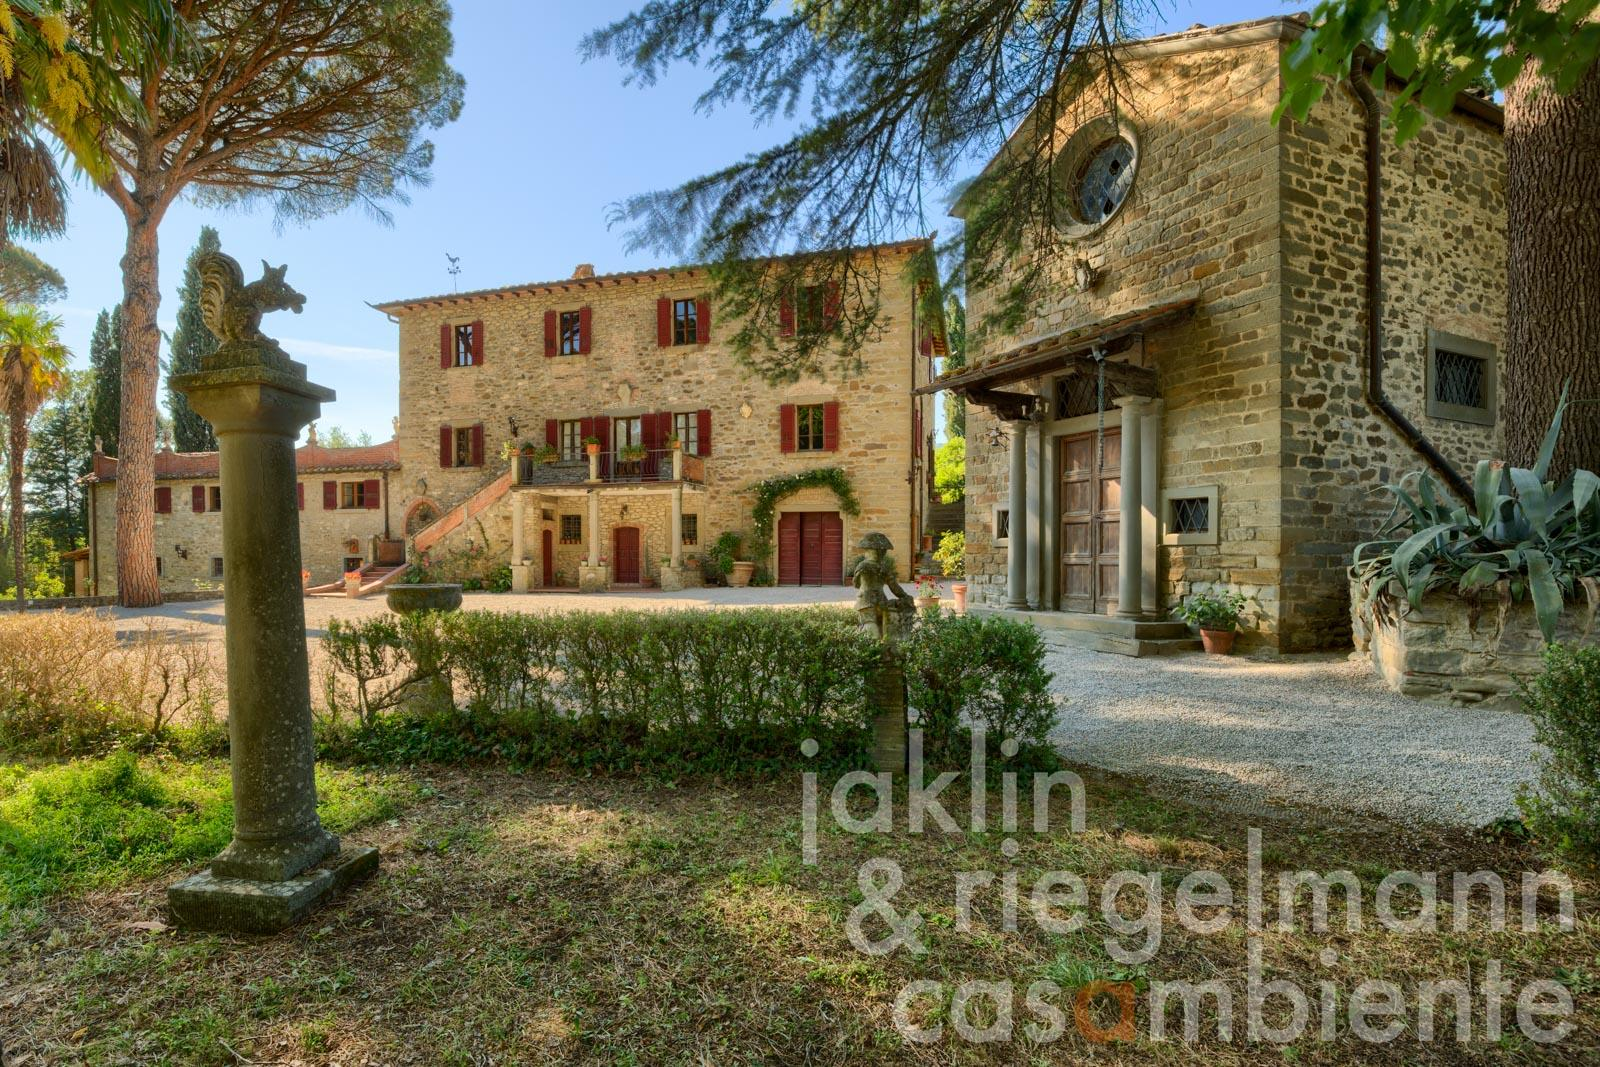 Tuscany villa with guest apartments, chapel, vineyard and olive grove near Cortona